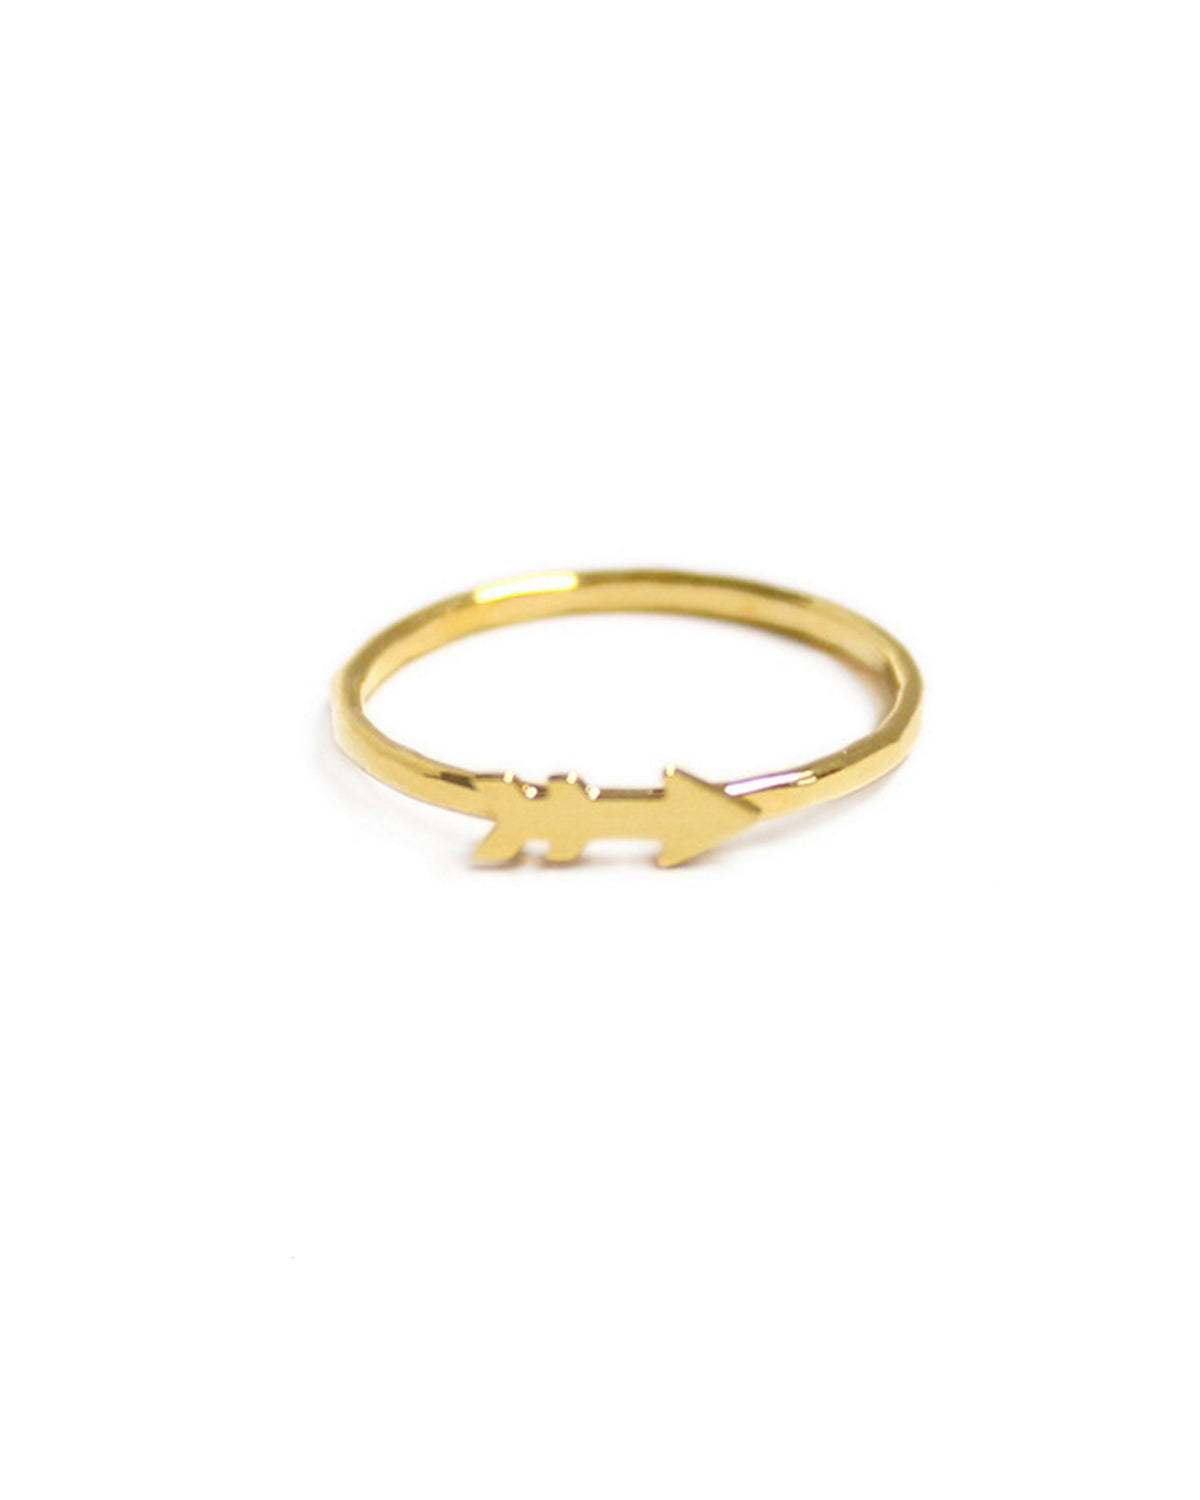 Kris Nations Jewelry Gold / 3 Arrow Knuckle Ring